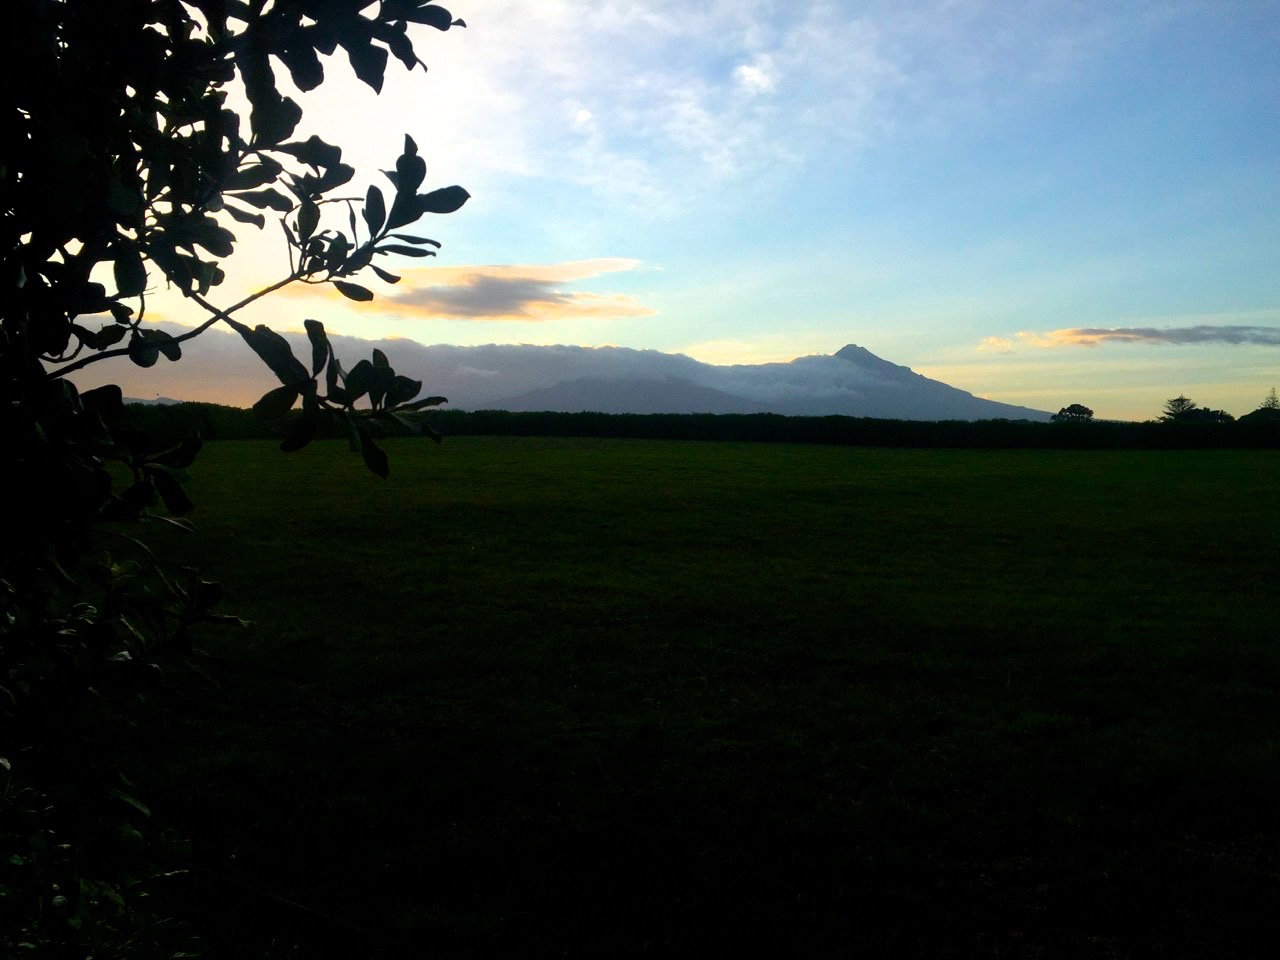 According to Māori mythology, Mount Taranaki once lived in the middle of the North Island with all the other New Zealand volcanoes. He was in love with the beautiful Pihanga but lost her to Mount Tongariro. Wounded and heart broken Taranaki headed westwards until he reached the Pouakai Ranges and as the sun came up Taranaki found himself at his new home where he lives today. If you see Taranaki covered in rainclouds, he is said to be crying for his lost love. If you see him bathing in a beautiful sunset or sunrise, he is said to be displaying himself to Pihanga. Mount Tongariro's continuously eruptive activities are said to be a warning to Taranaki not to return inlands ️